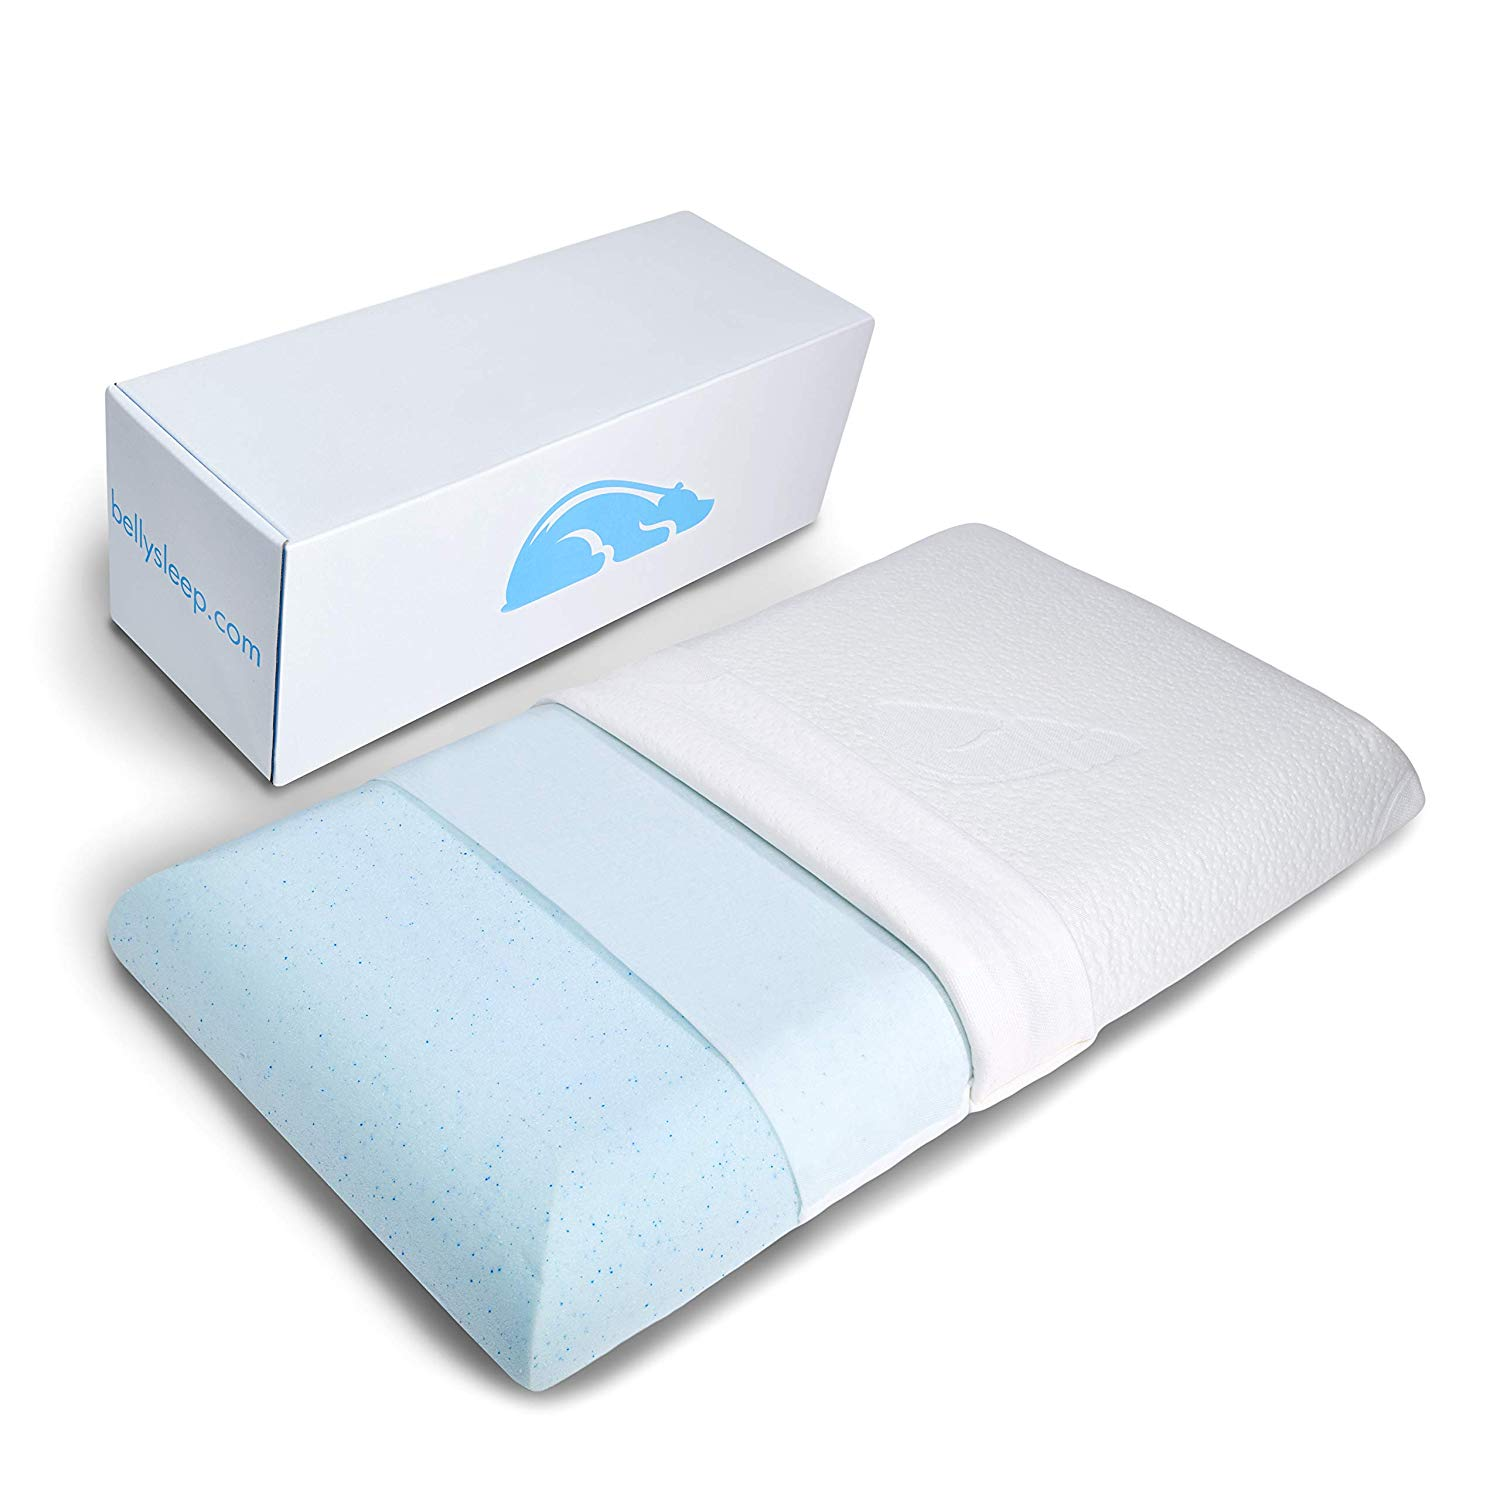 Belly Sleep Review by www.snoremagazine.com